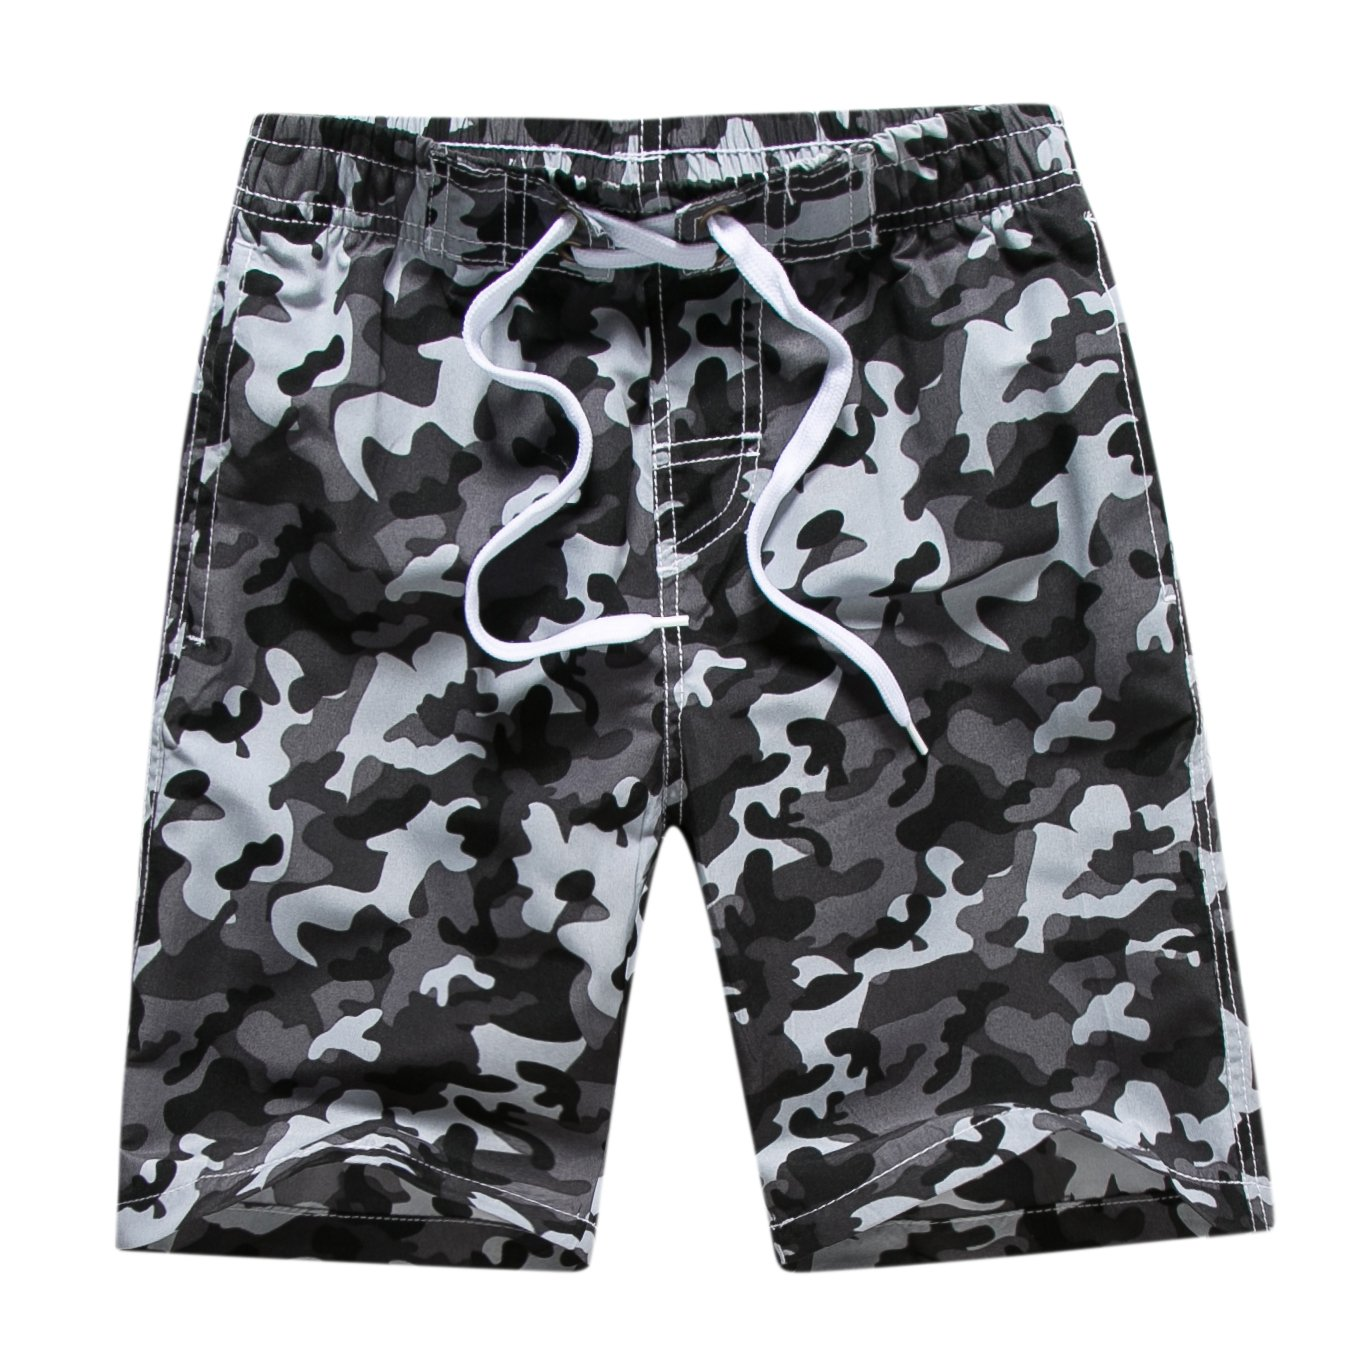 Echinodon Boys Swim Shorts Fast Dry Boardshorts Adjustable Waist Beach Shorts with Side Pockets for Swimming Surfing